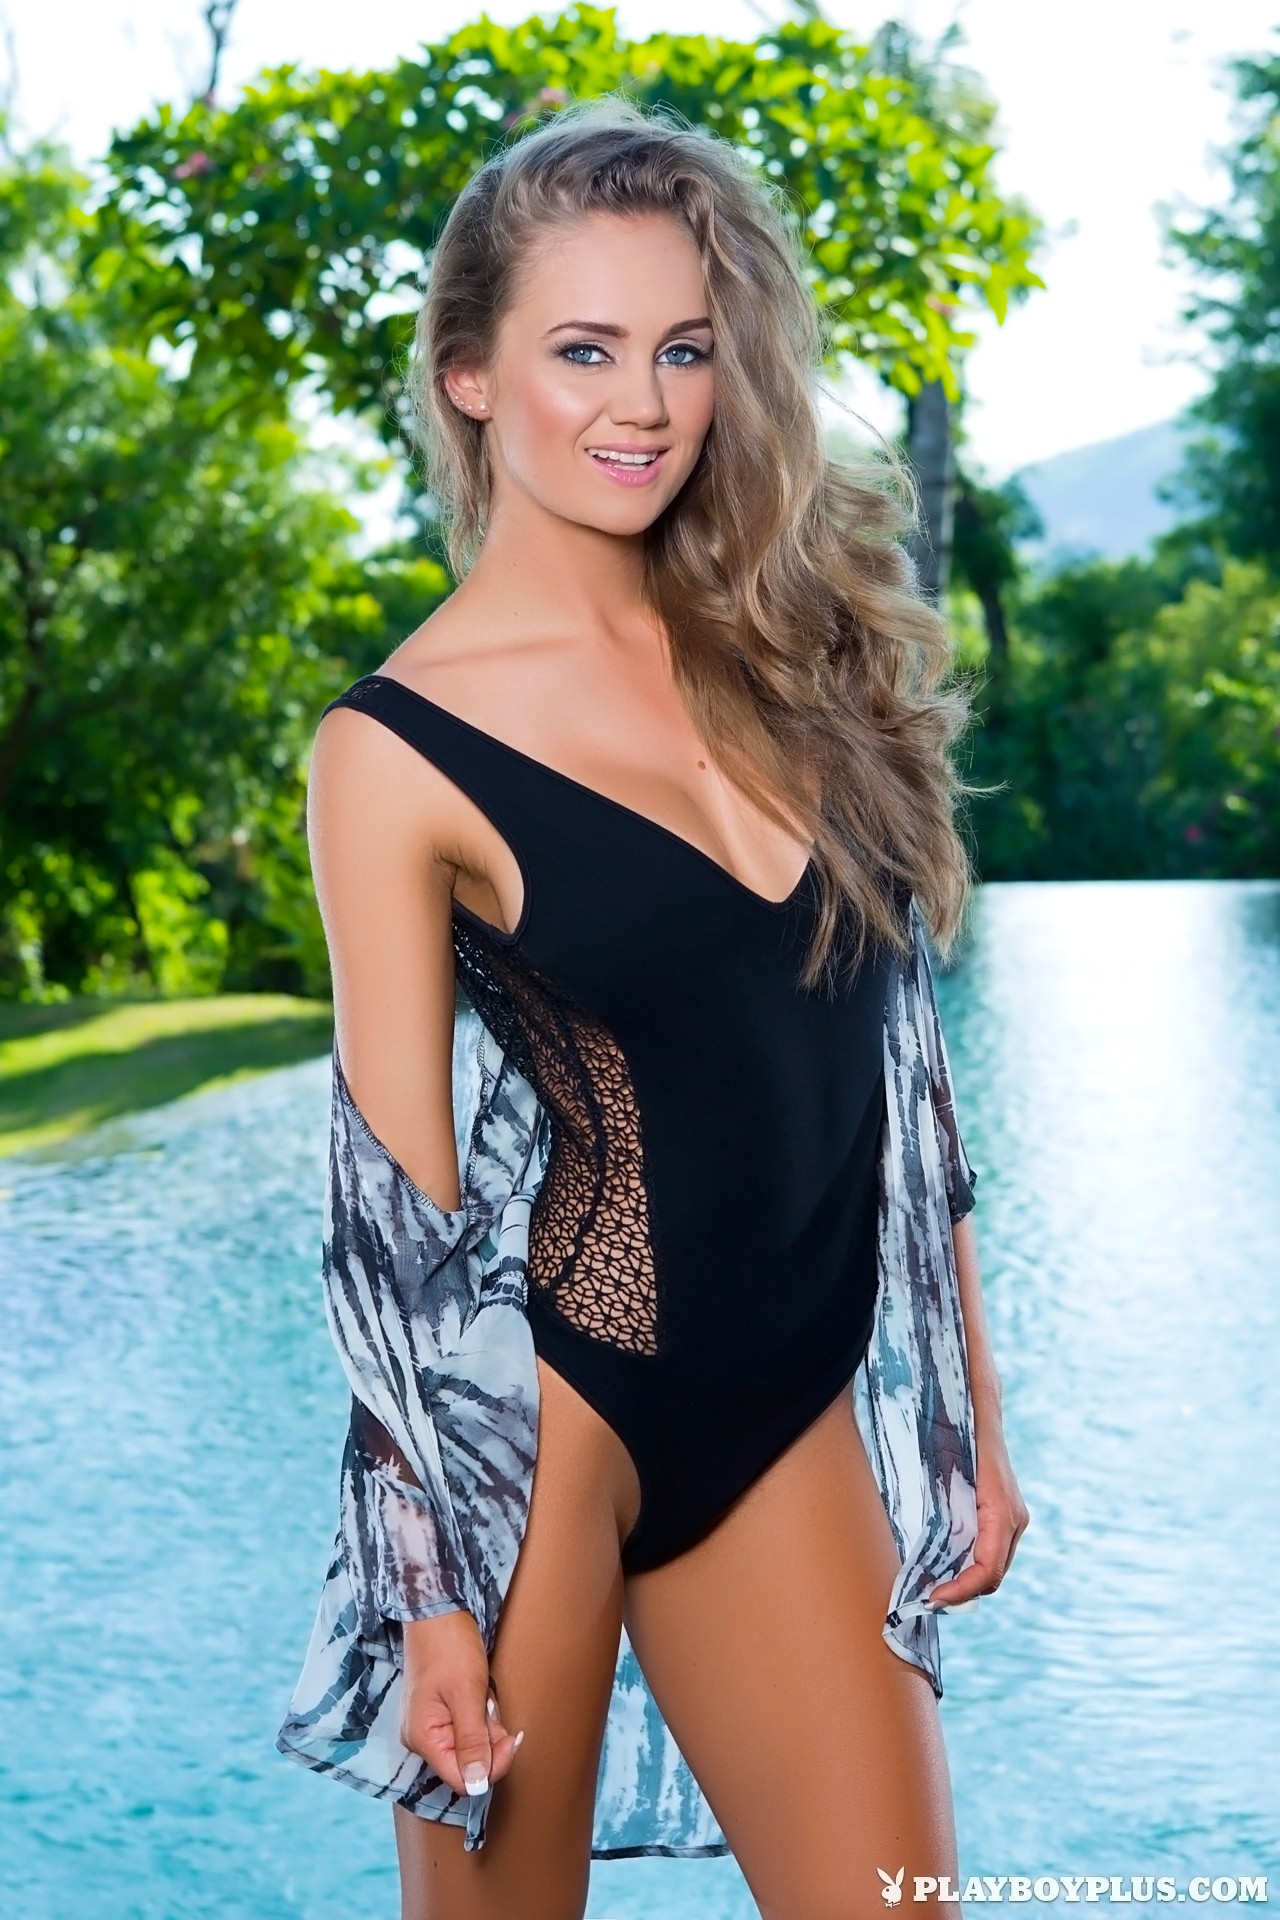 Ashleigh McAuliffe Model of the Month July 2015 | Daily Girls @ Female Update